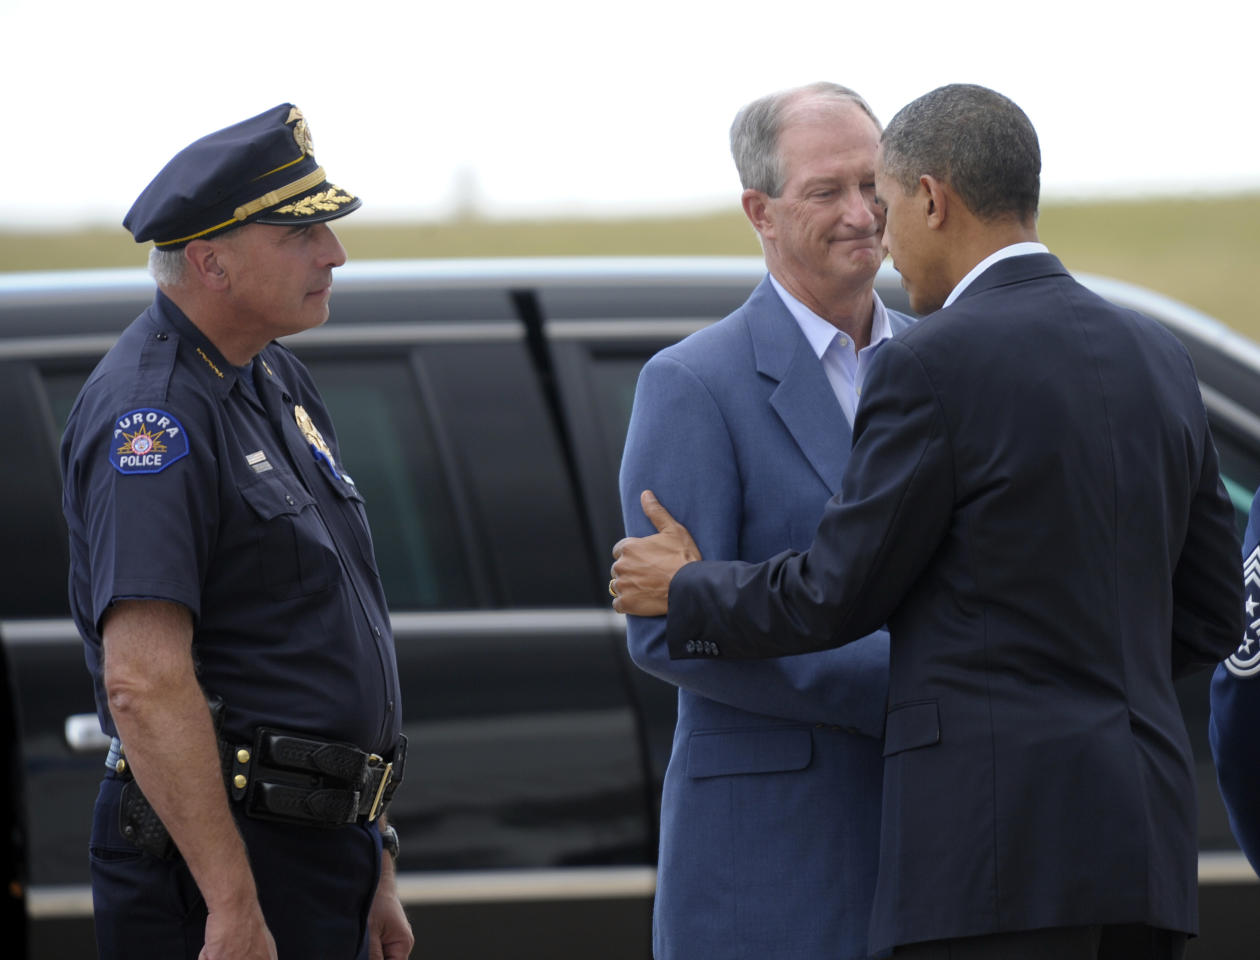 President Barack Obama greets Aurora (Colo.) Mayor Steve Hogan as Aurora Police Chief Daniel Oates, left, watches after Obama arrived at at Buckley Air Force Base, Colo., Sunday, July 22, 2012. (AP Photo/Susan Walsh)